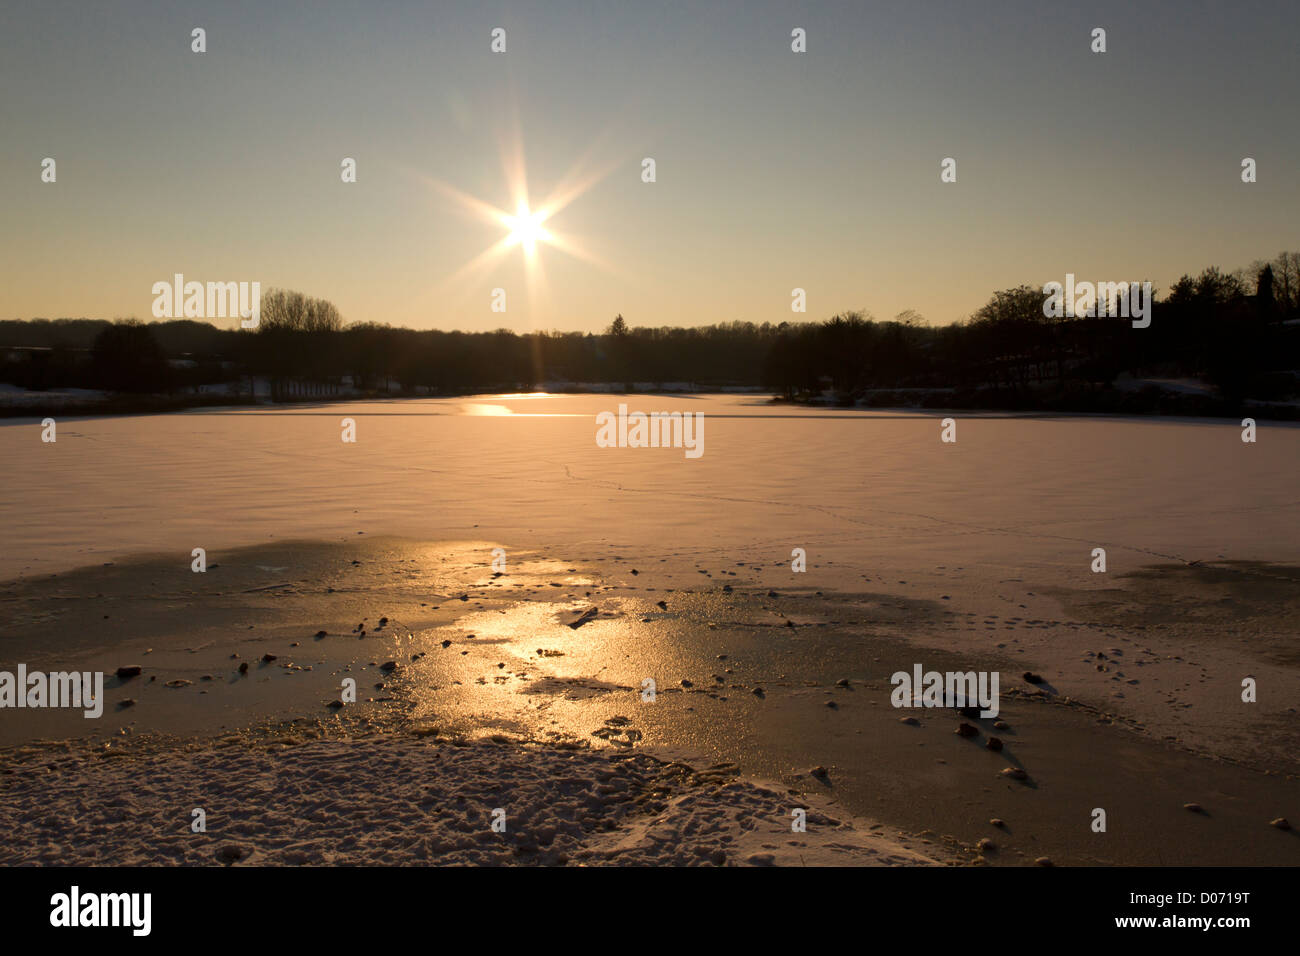 Frozen lake in countryside, France, Europe. - Stock Image